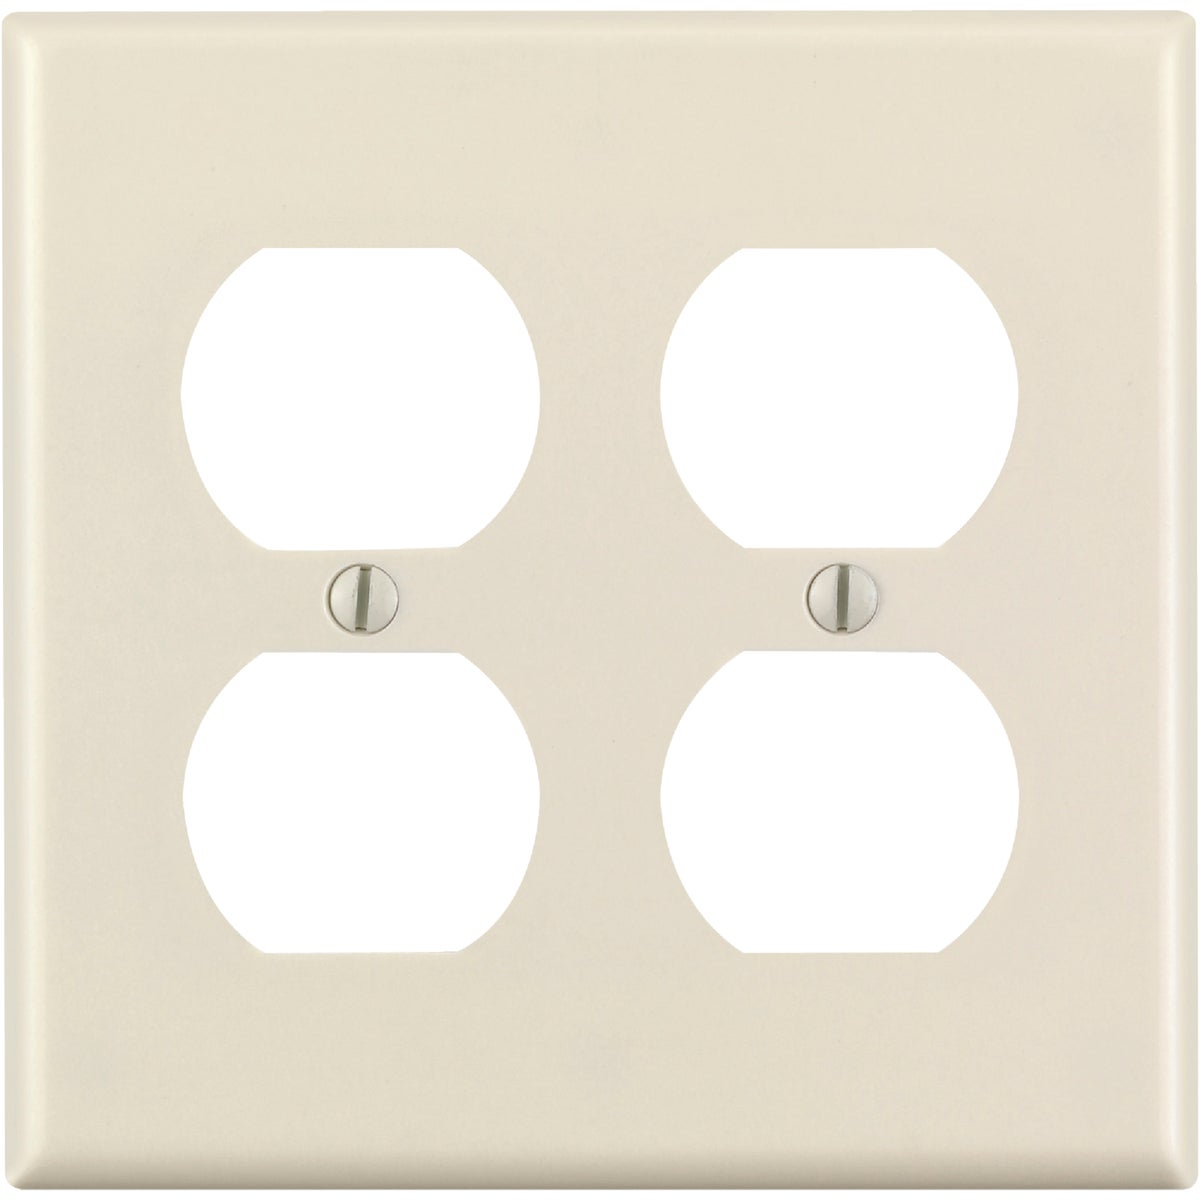 LT ALM 4 OUTLT WALLPLATE - 000-78016 by Leviton Mfg Co